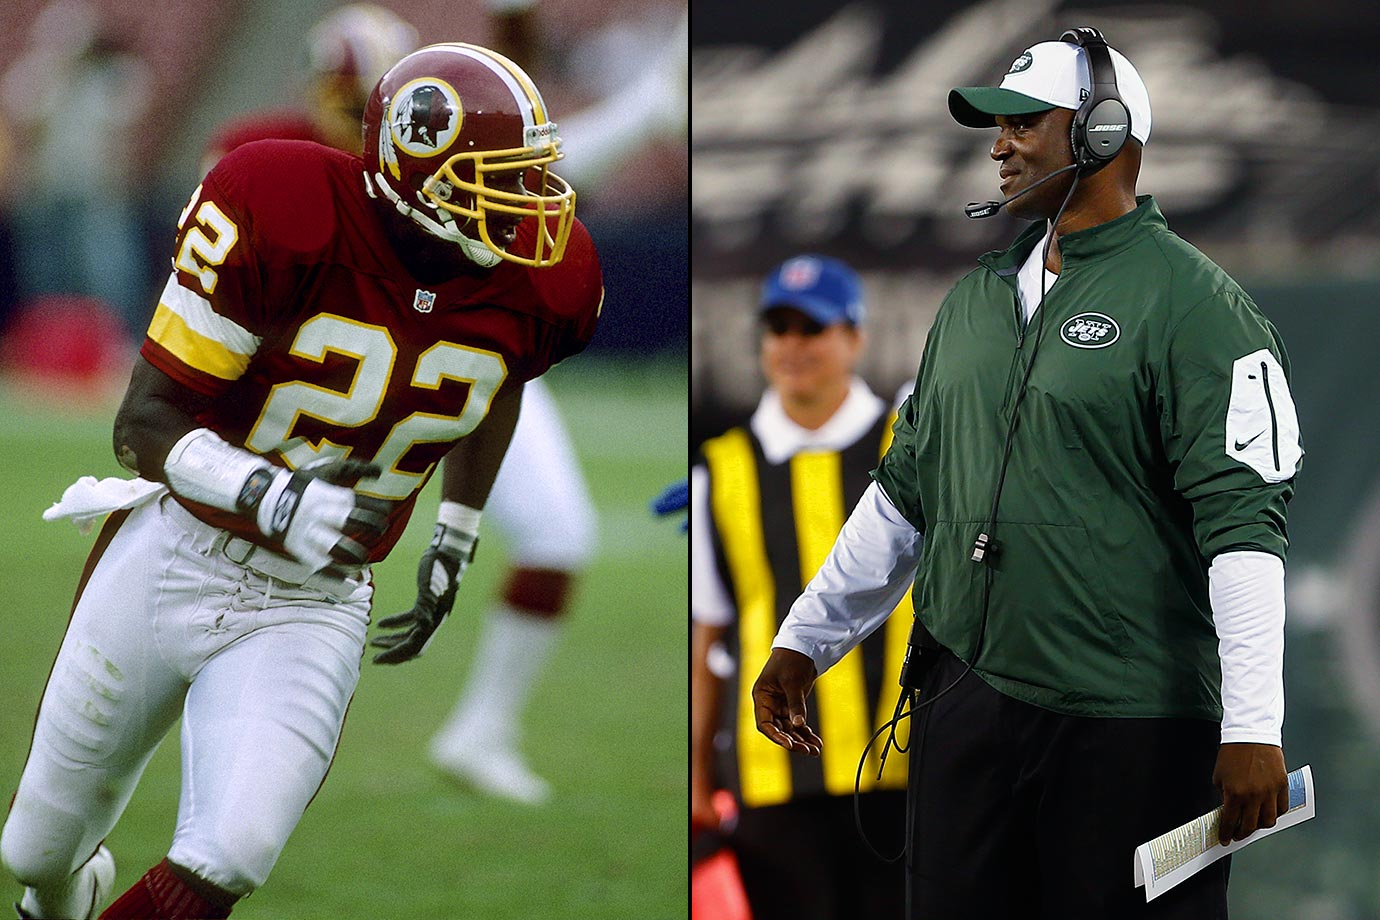 Todd Bowles played safety for eight NFL seasons, seven with the Redskins, and started in Super Bowl XXII. Bowles had 15 career interceptions, seven fumble recoveries and two sacks. After two seasons as Arizona's defensive coordinator (2013-14), Bowles signed a four-year deal to become the head coach of the New York Jets in 2015.